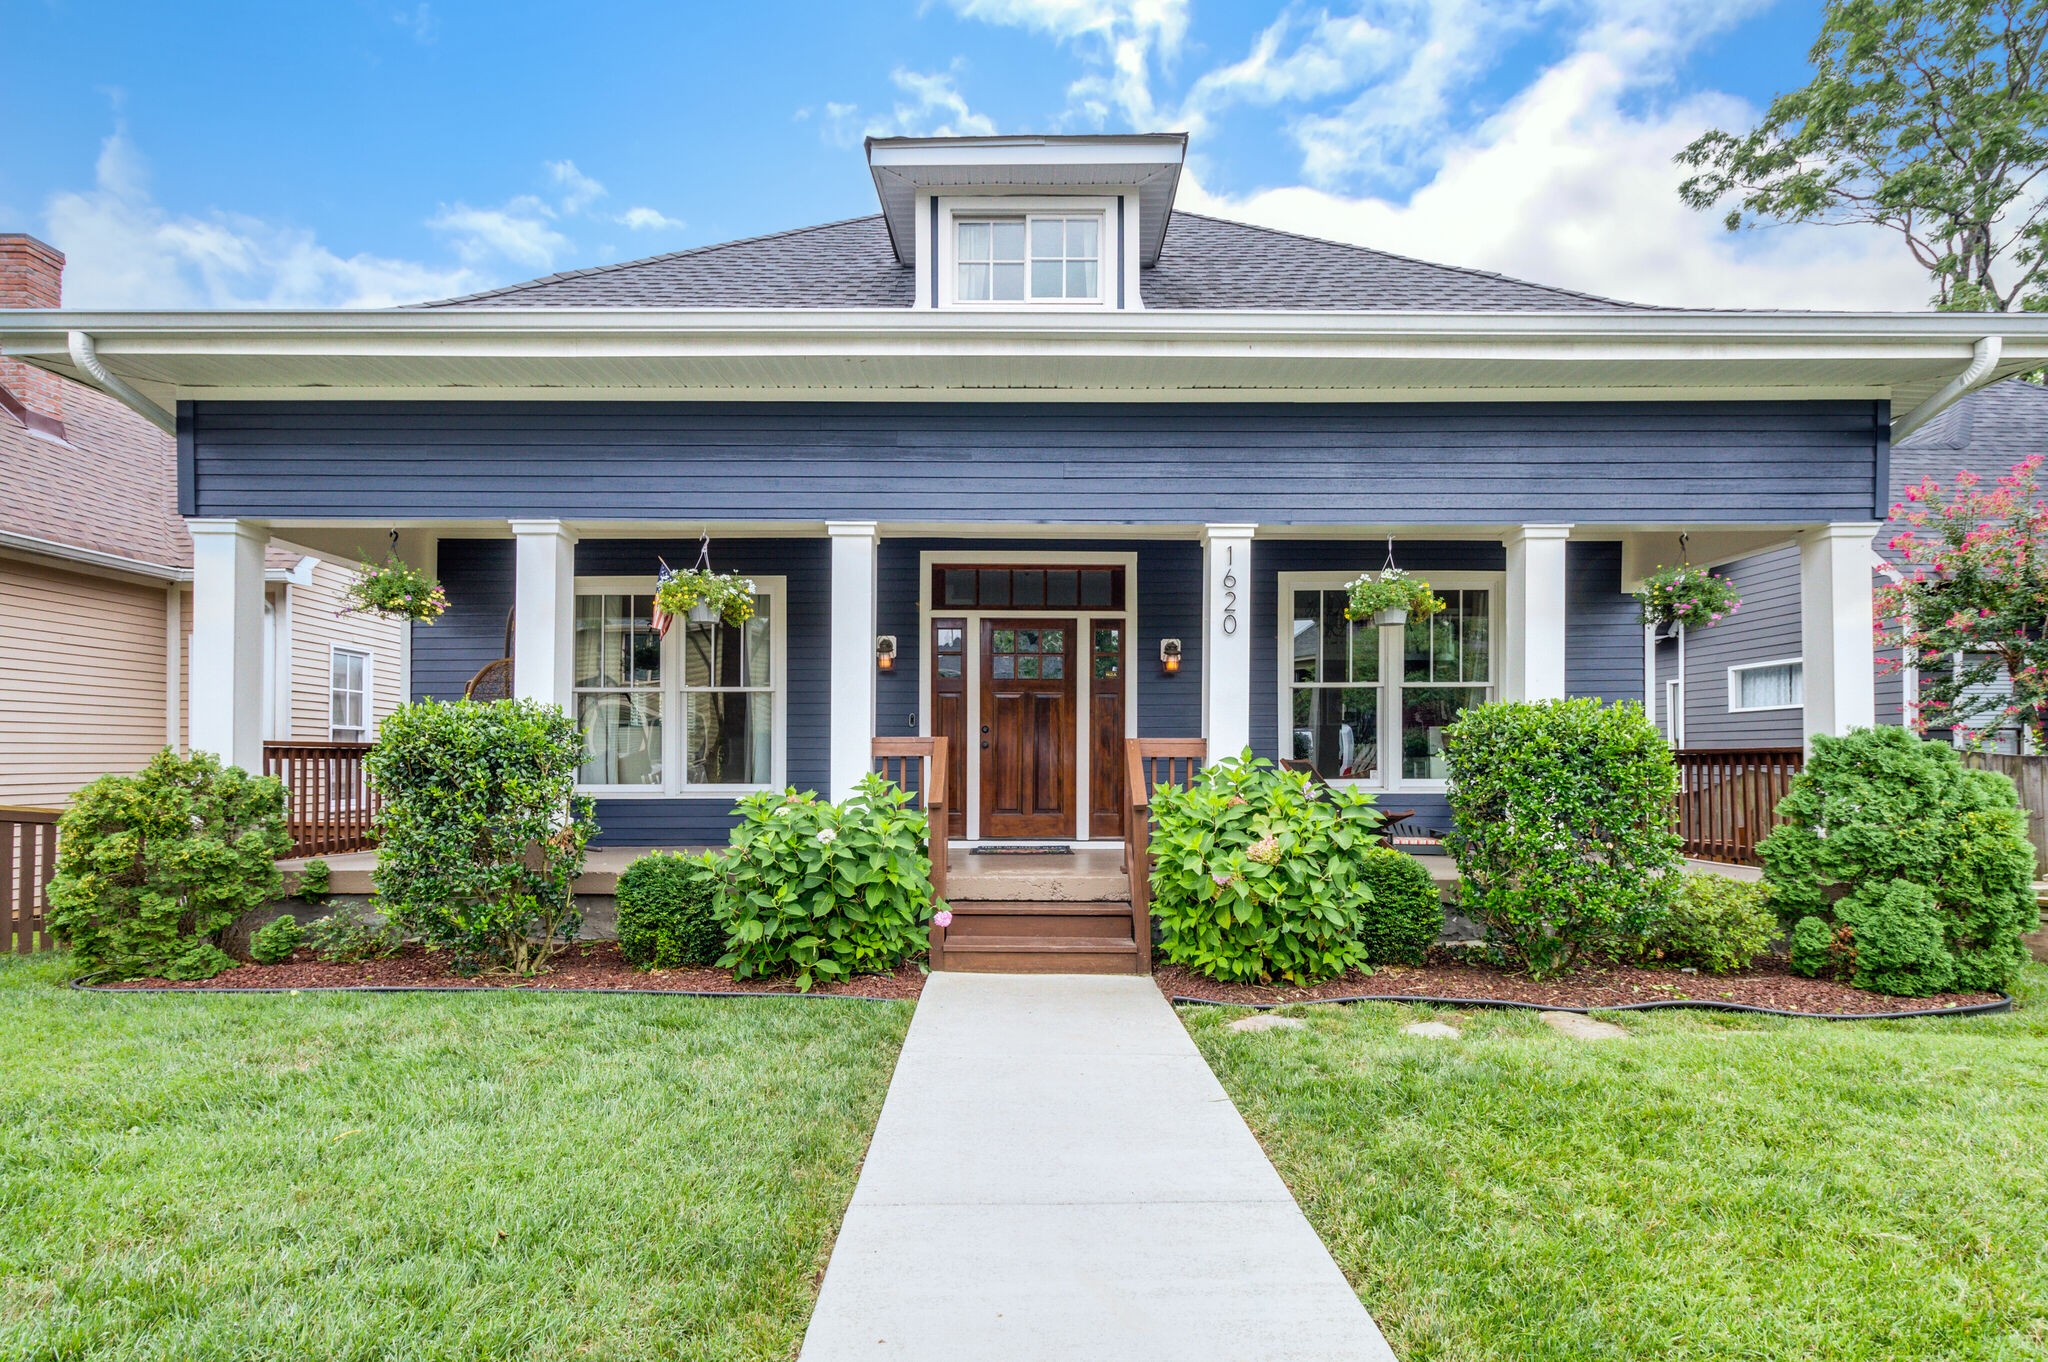 1620 Russell St Property Photo - Nashville, TN real estate listing